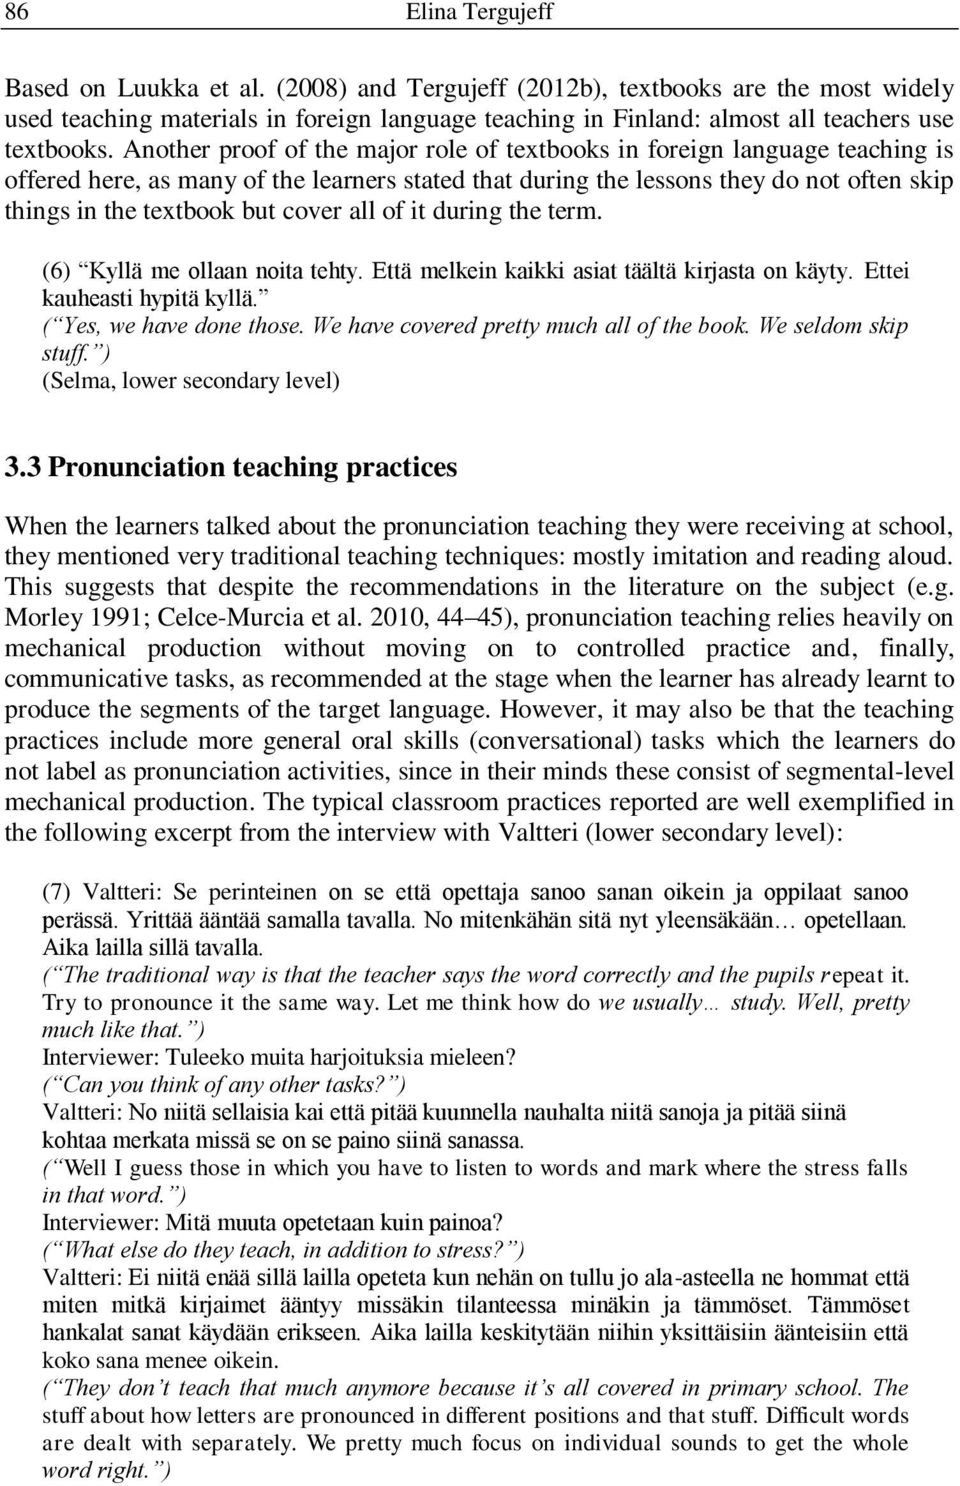 Another proof of the major role of textbooks in foreign language teaching is offered here, as many of the learners stated that during the lessons they do not often skip things in the textbook but